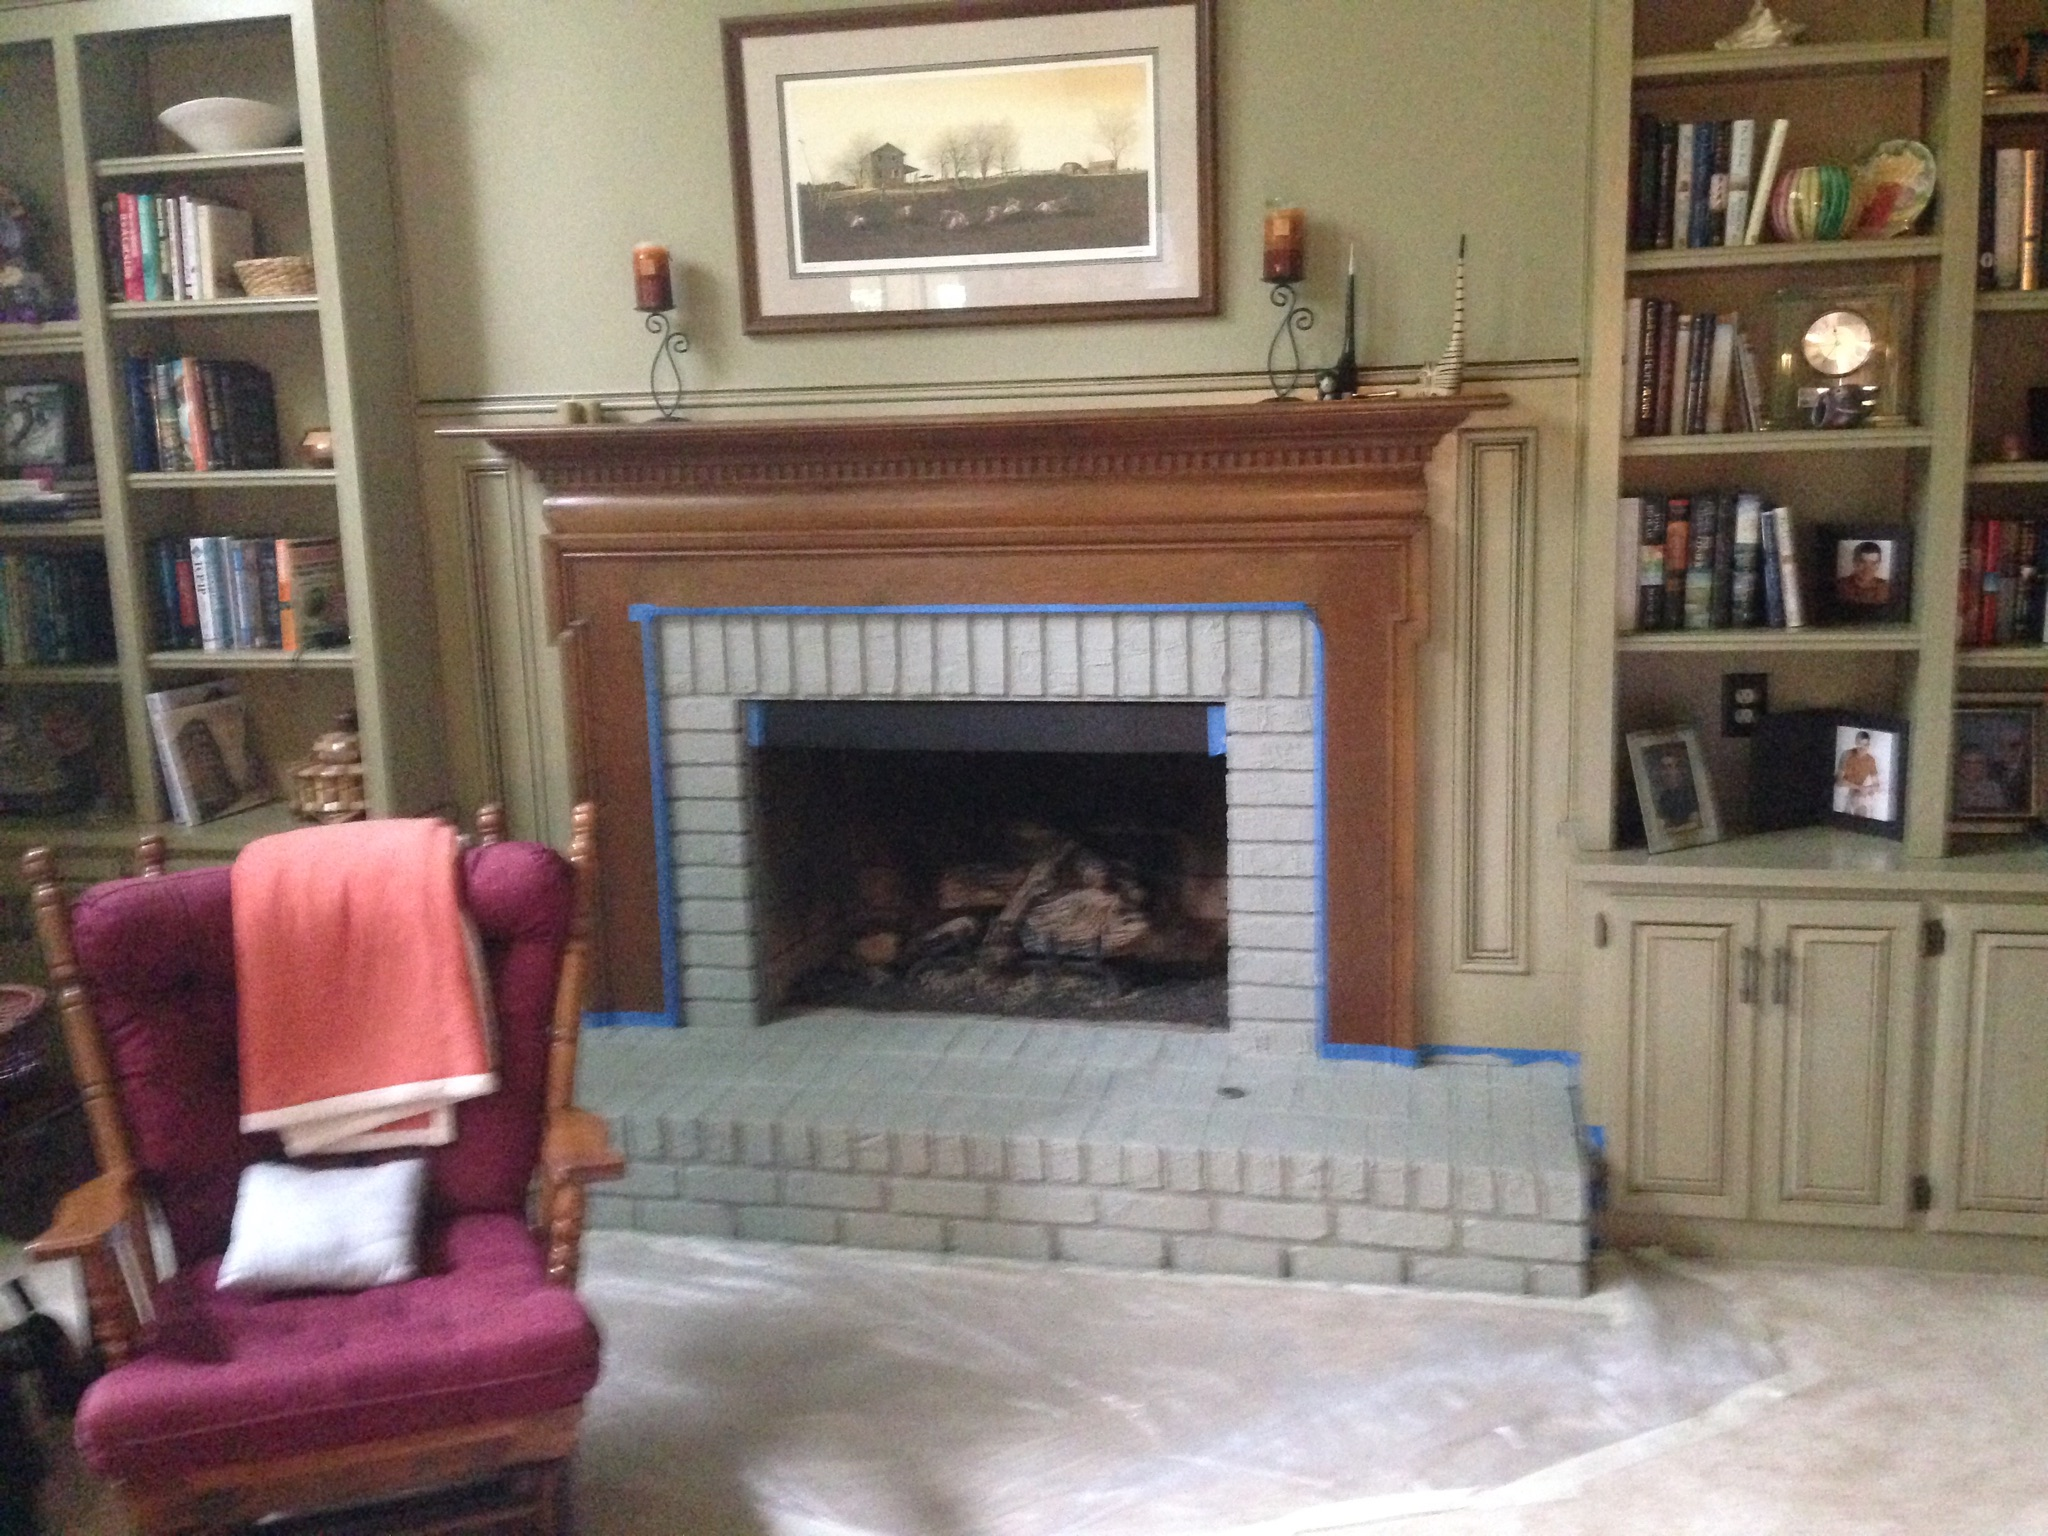 We had a fail with the original fireplace paint color! - So we asked you which you would choose!